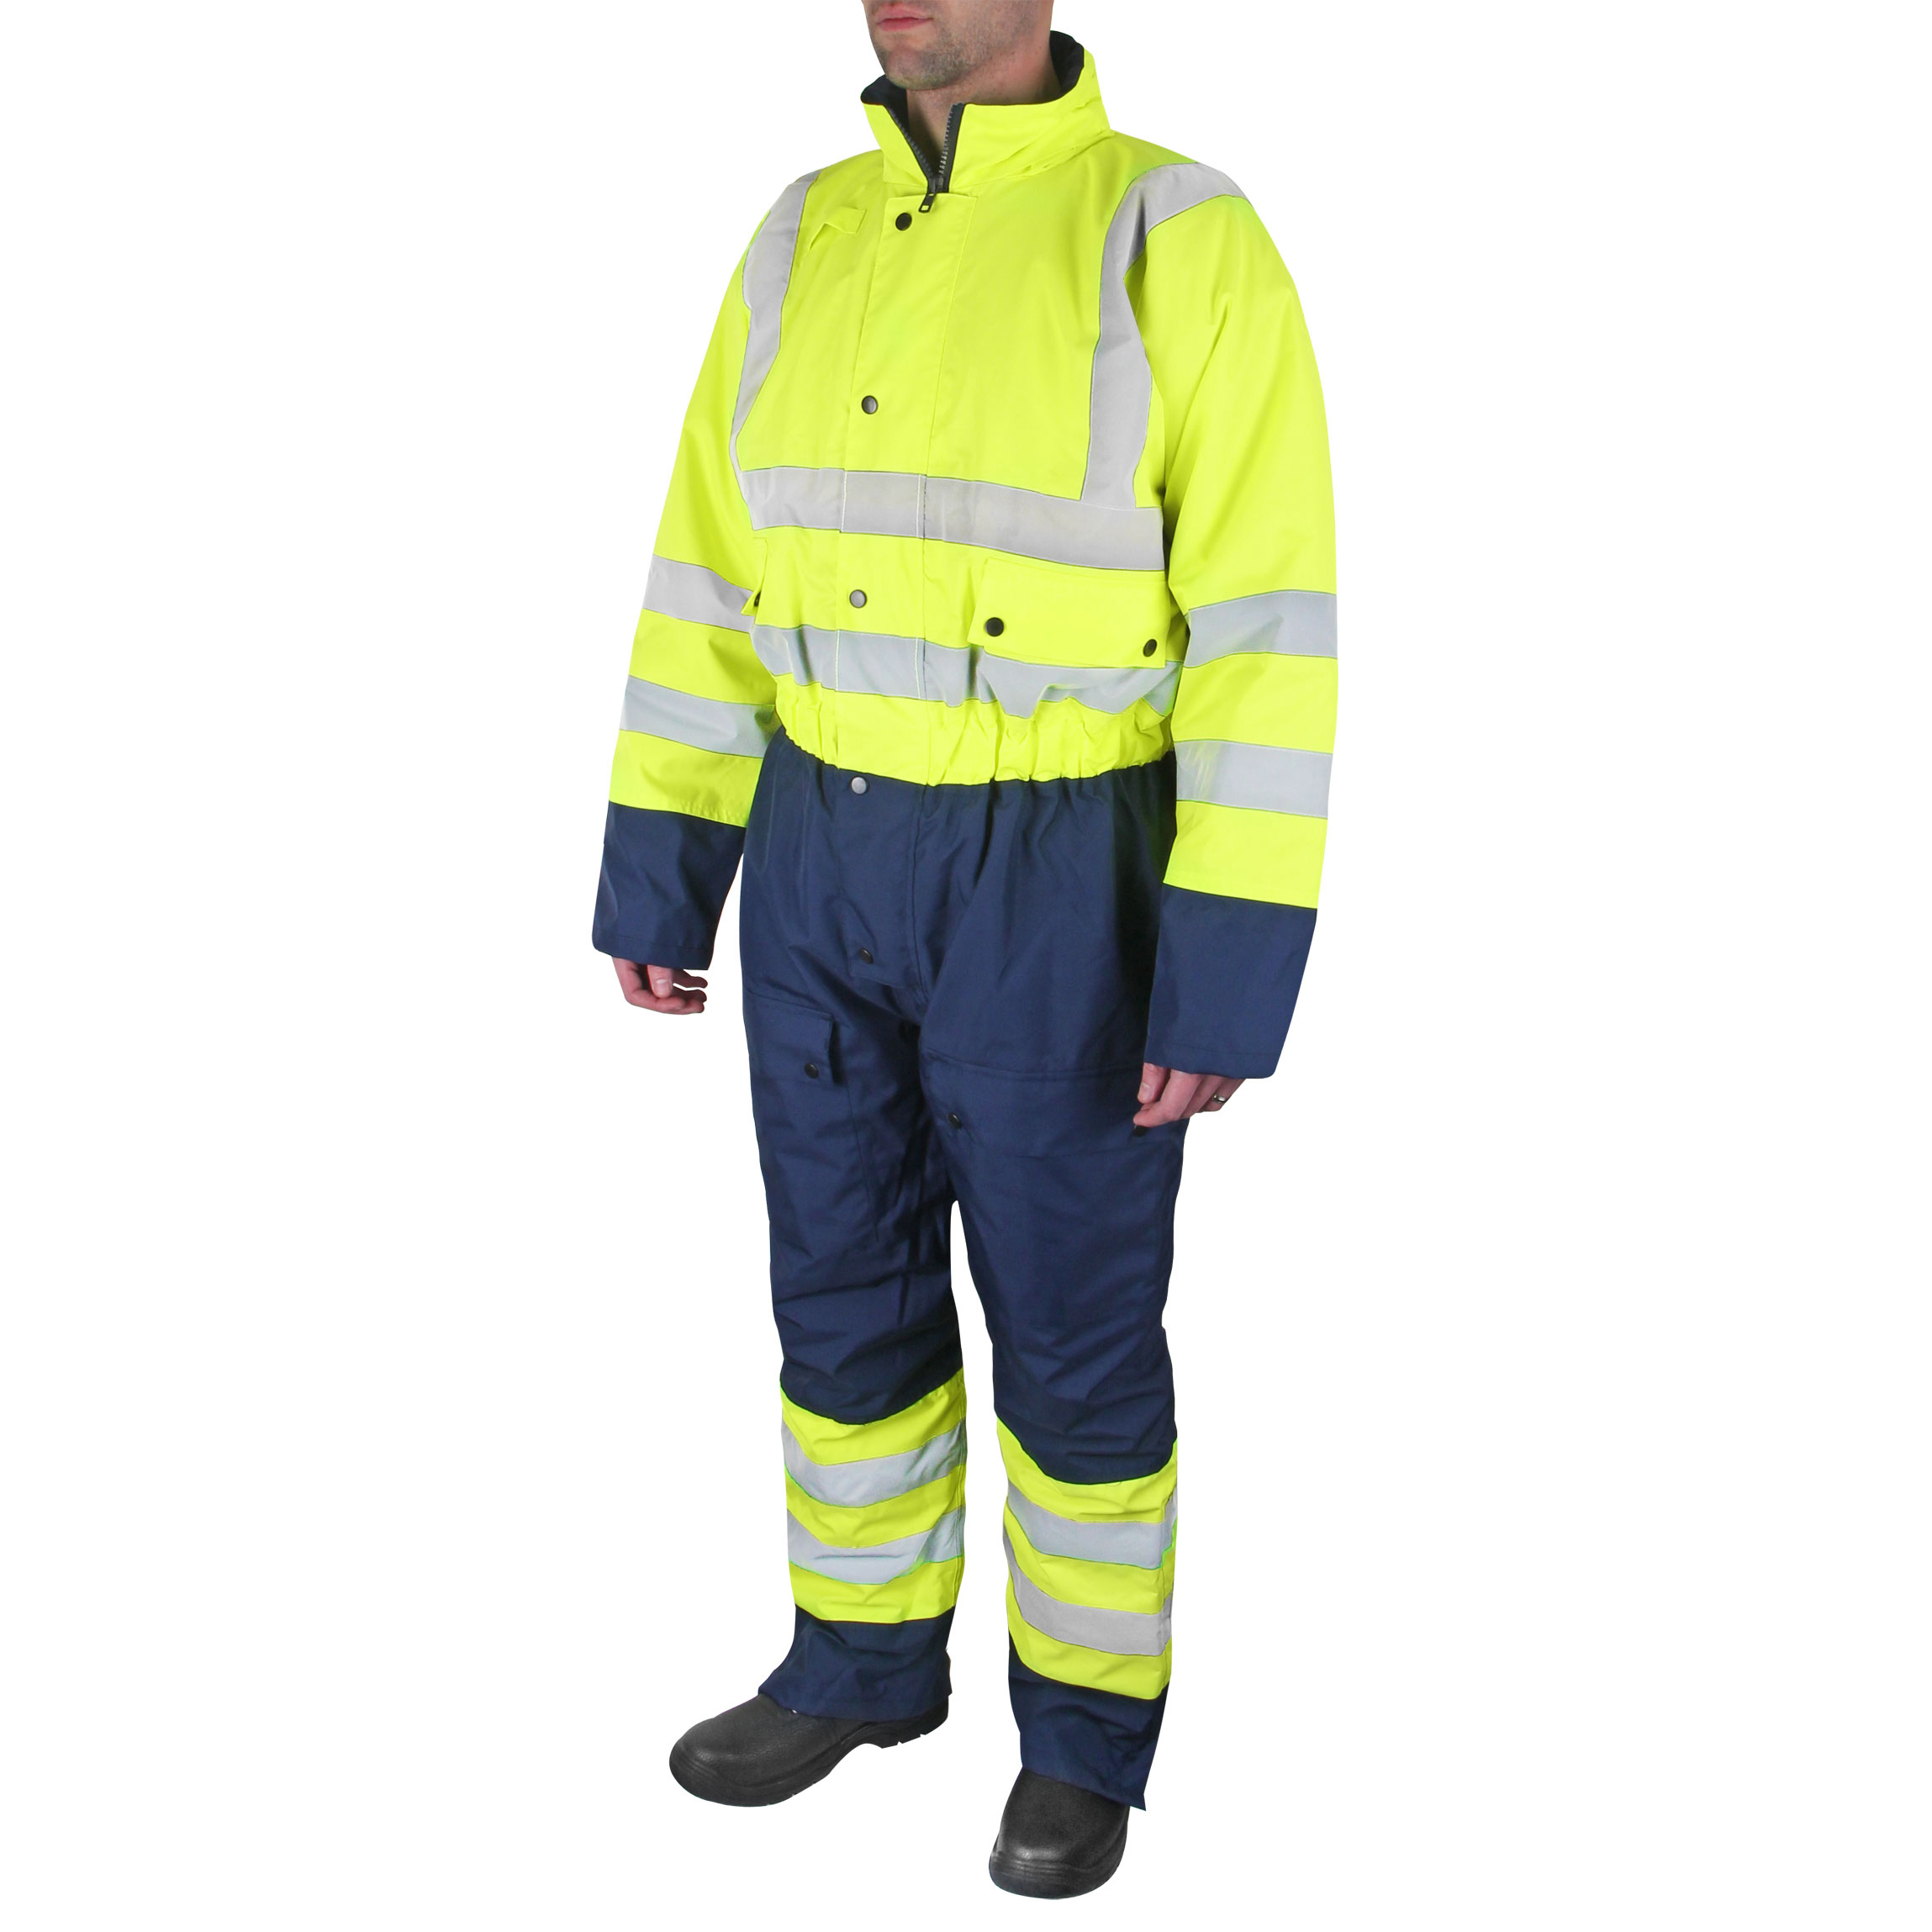 B-Seen Hi-Vis Thermal Waterproof Coveralls 2XL Yellow/Navy Ref BD900SYNXXL *Upto 3 Day Leadtime*